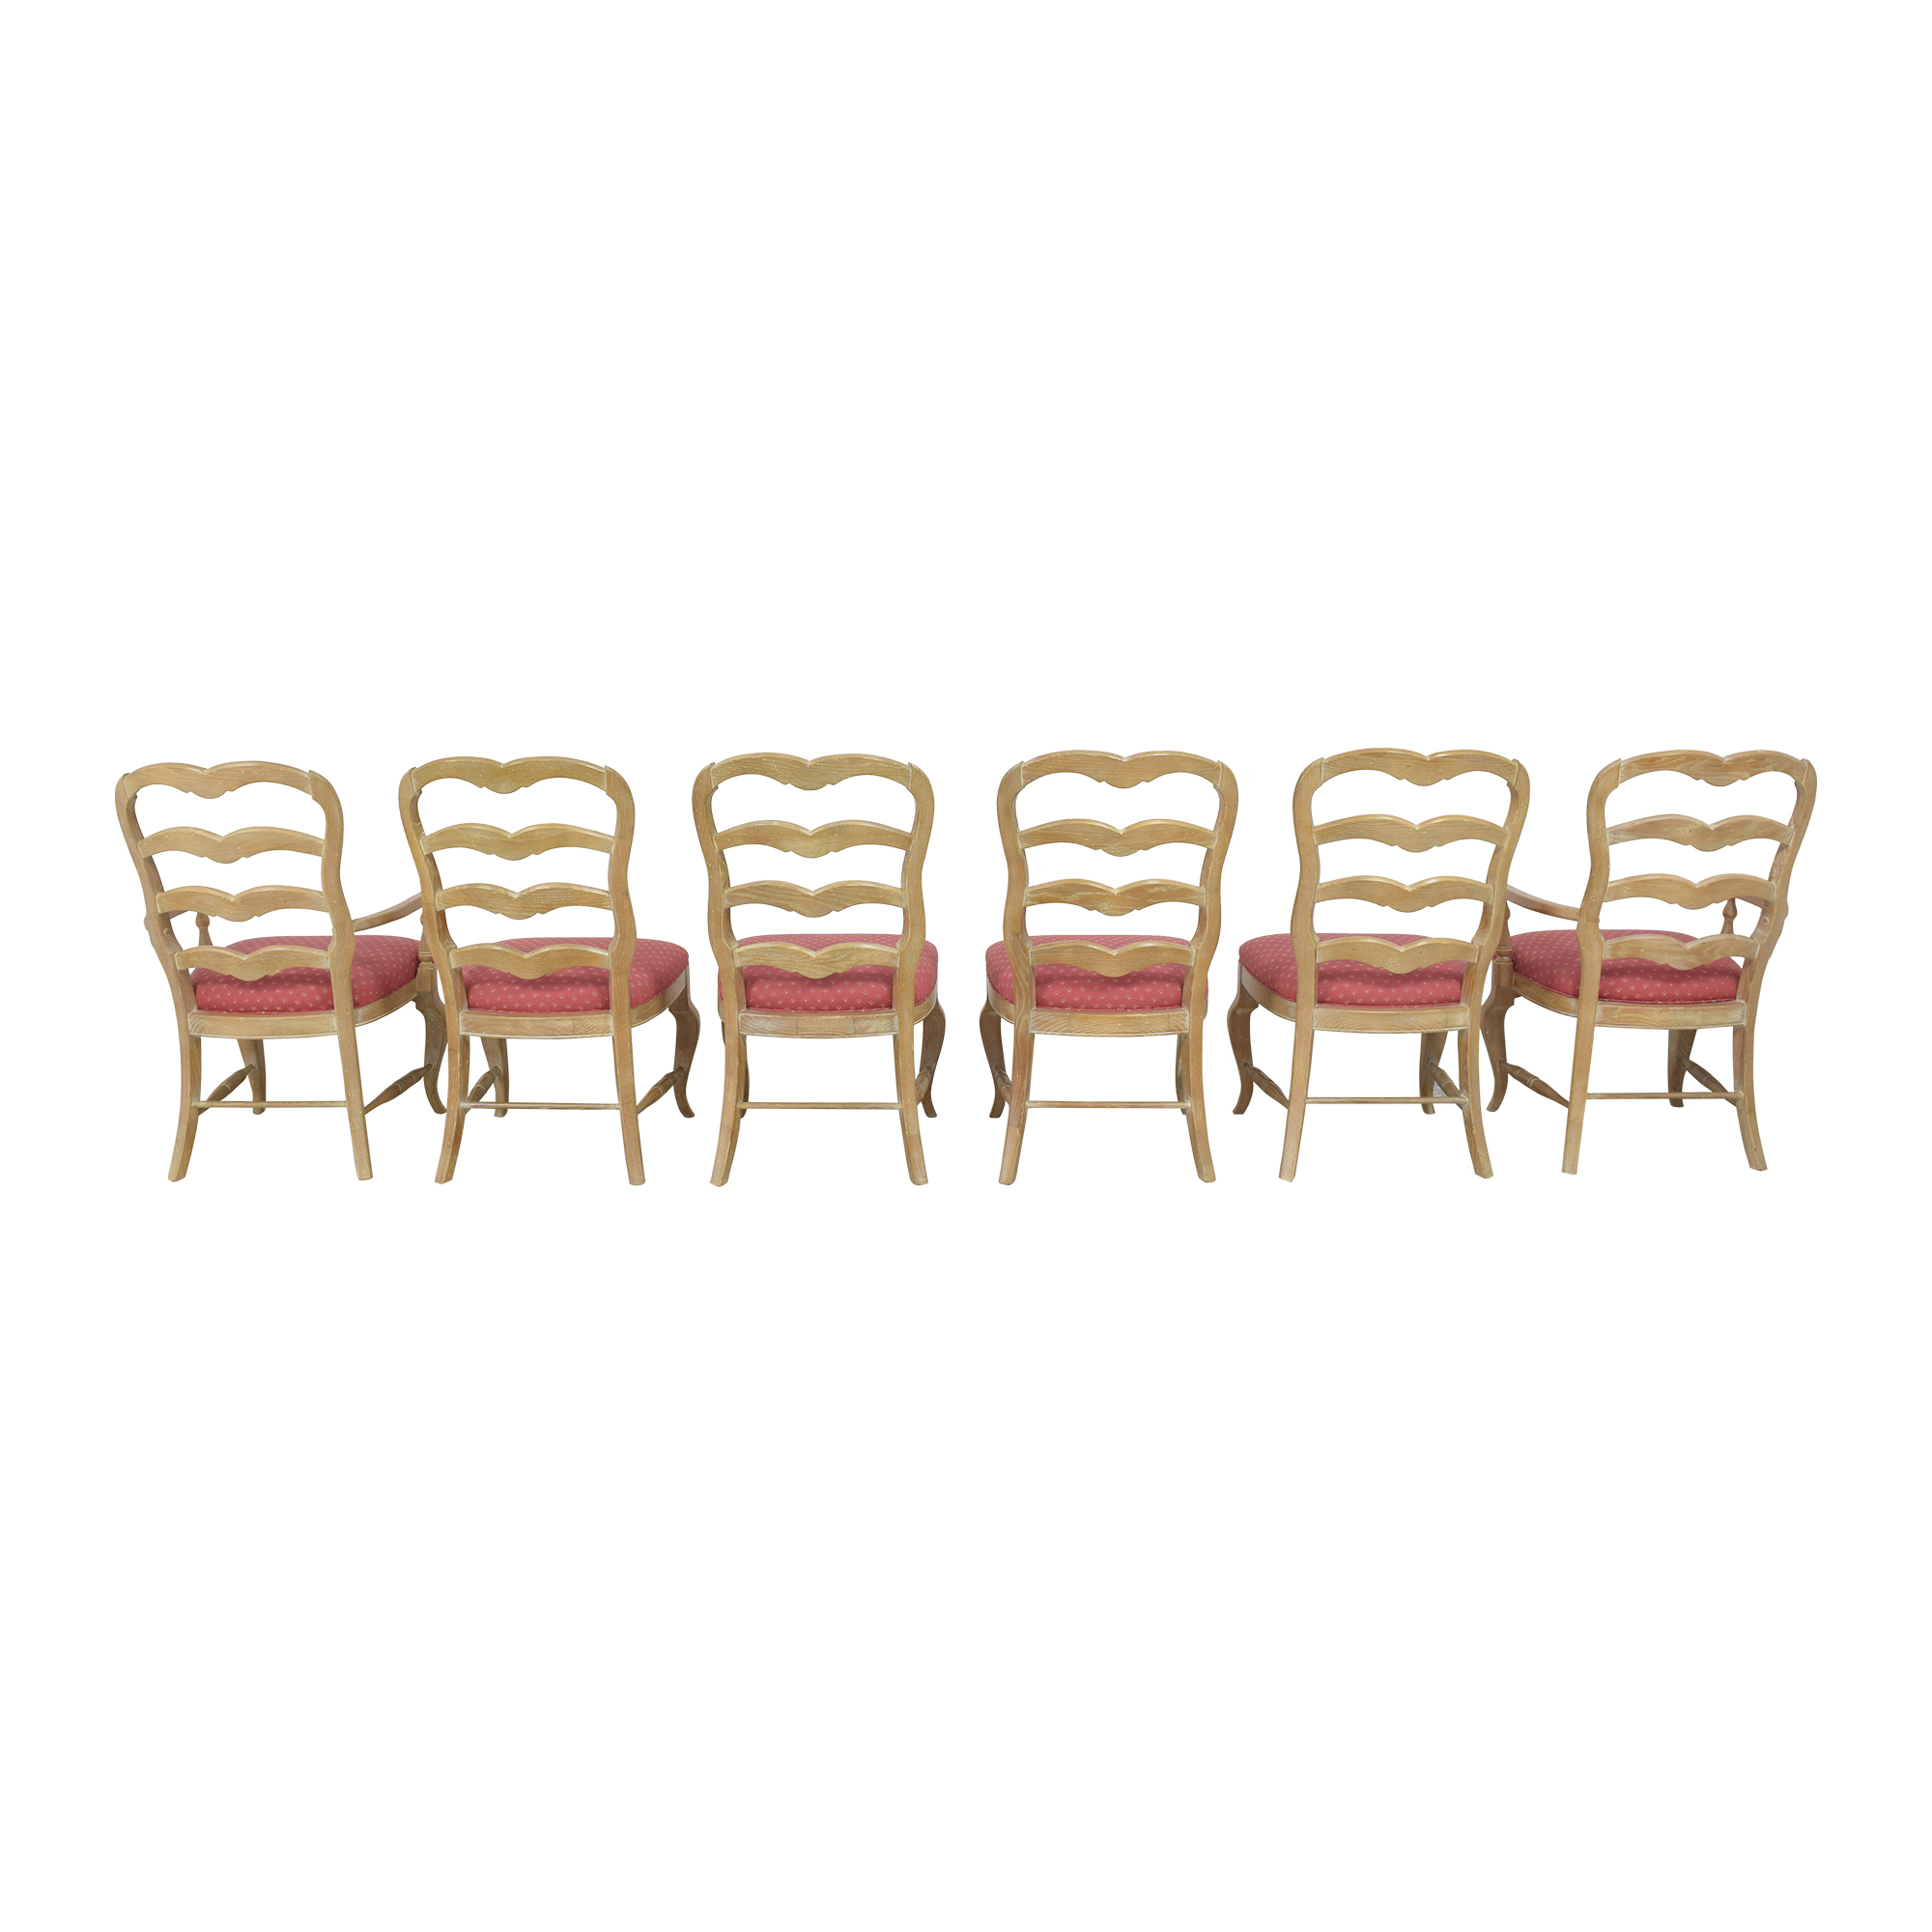 Pennsylvania House Country French Ladder Back Dining Chairs / Chairs